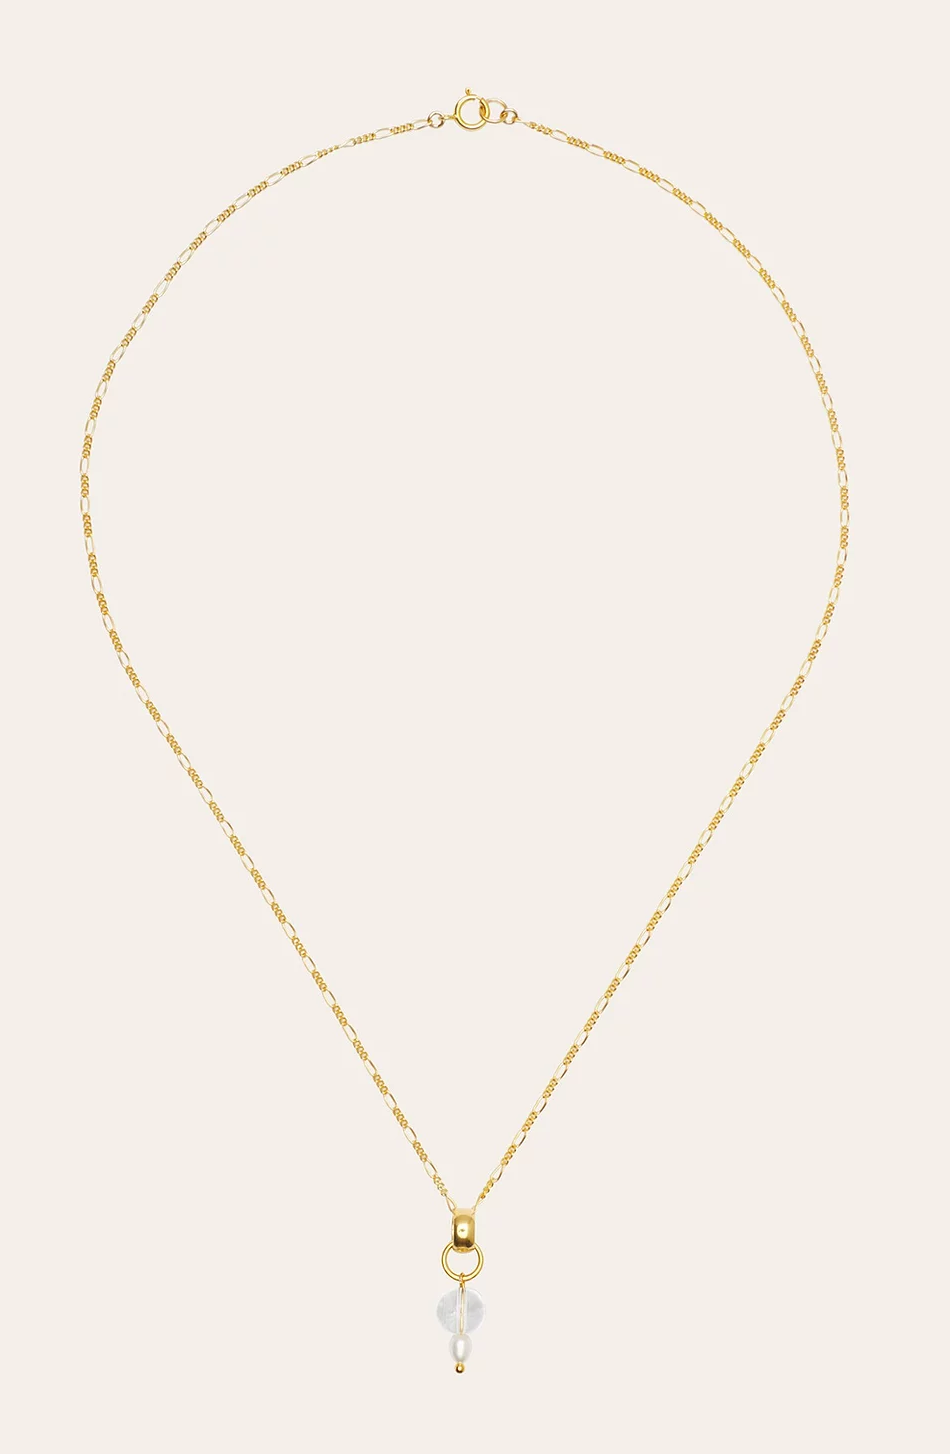 Yam True Fortune Necklace